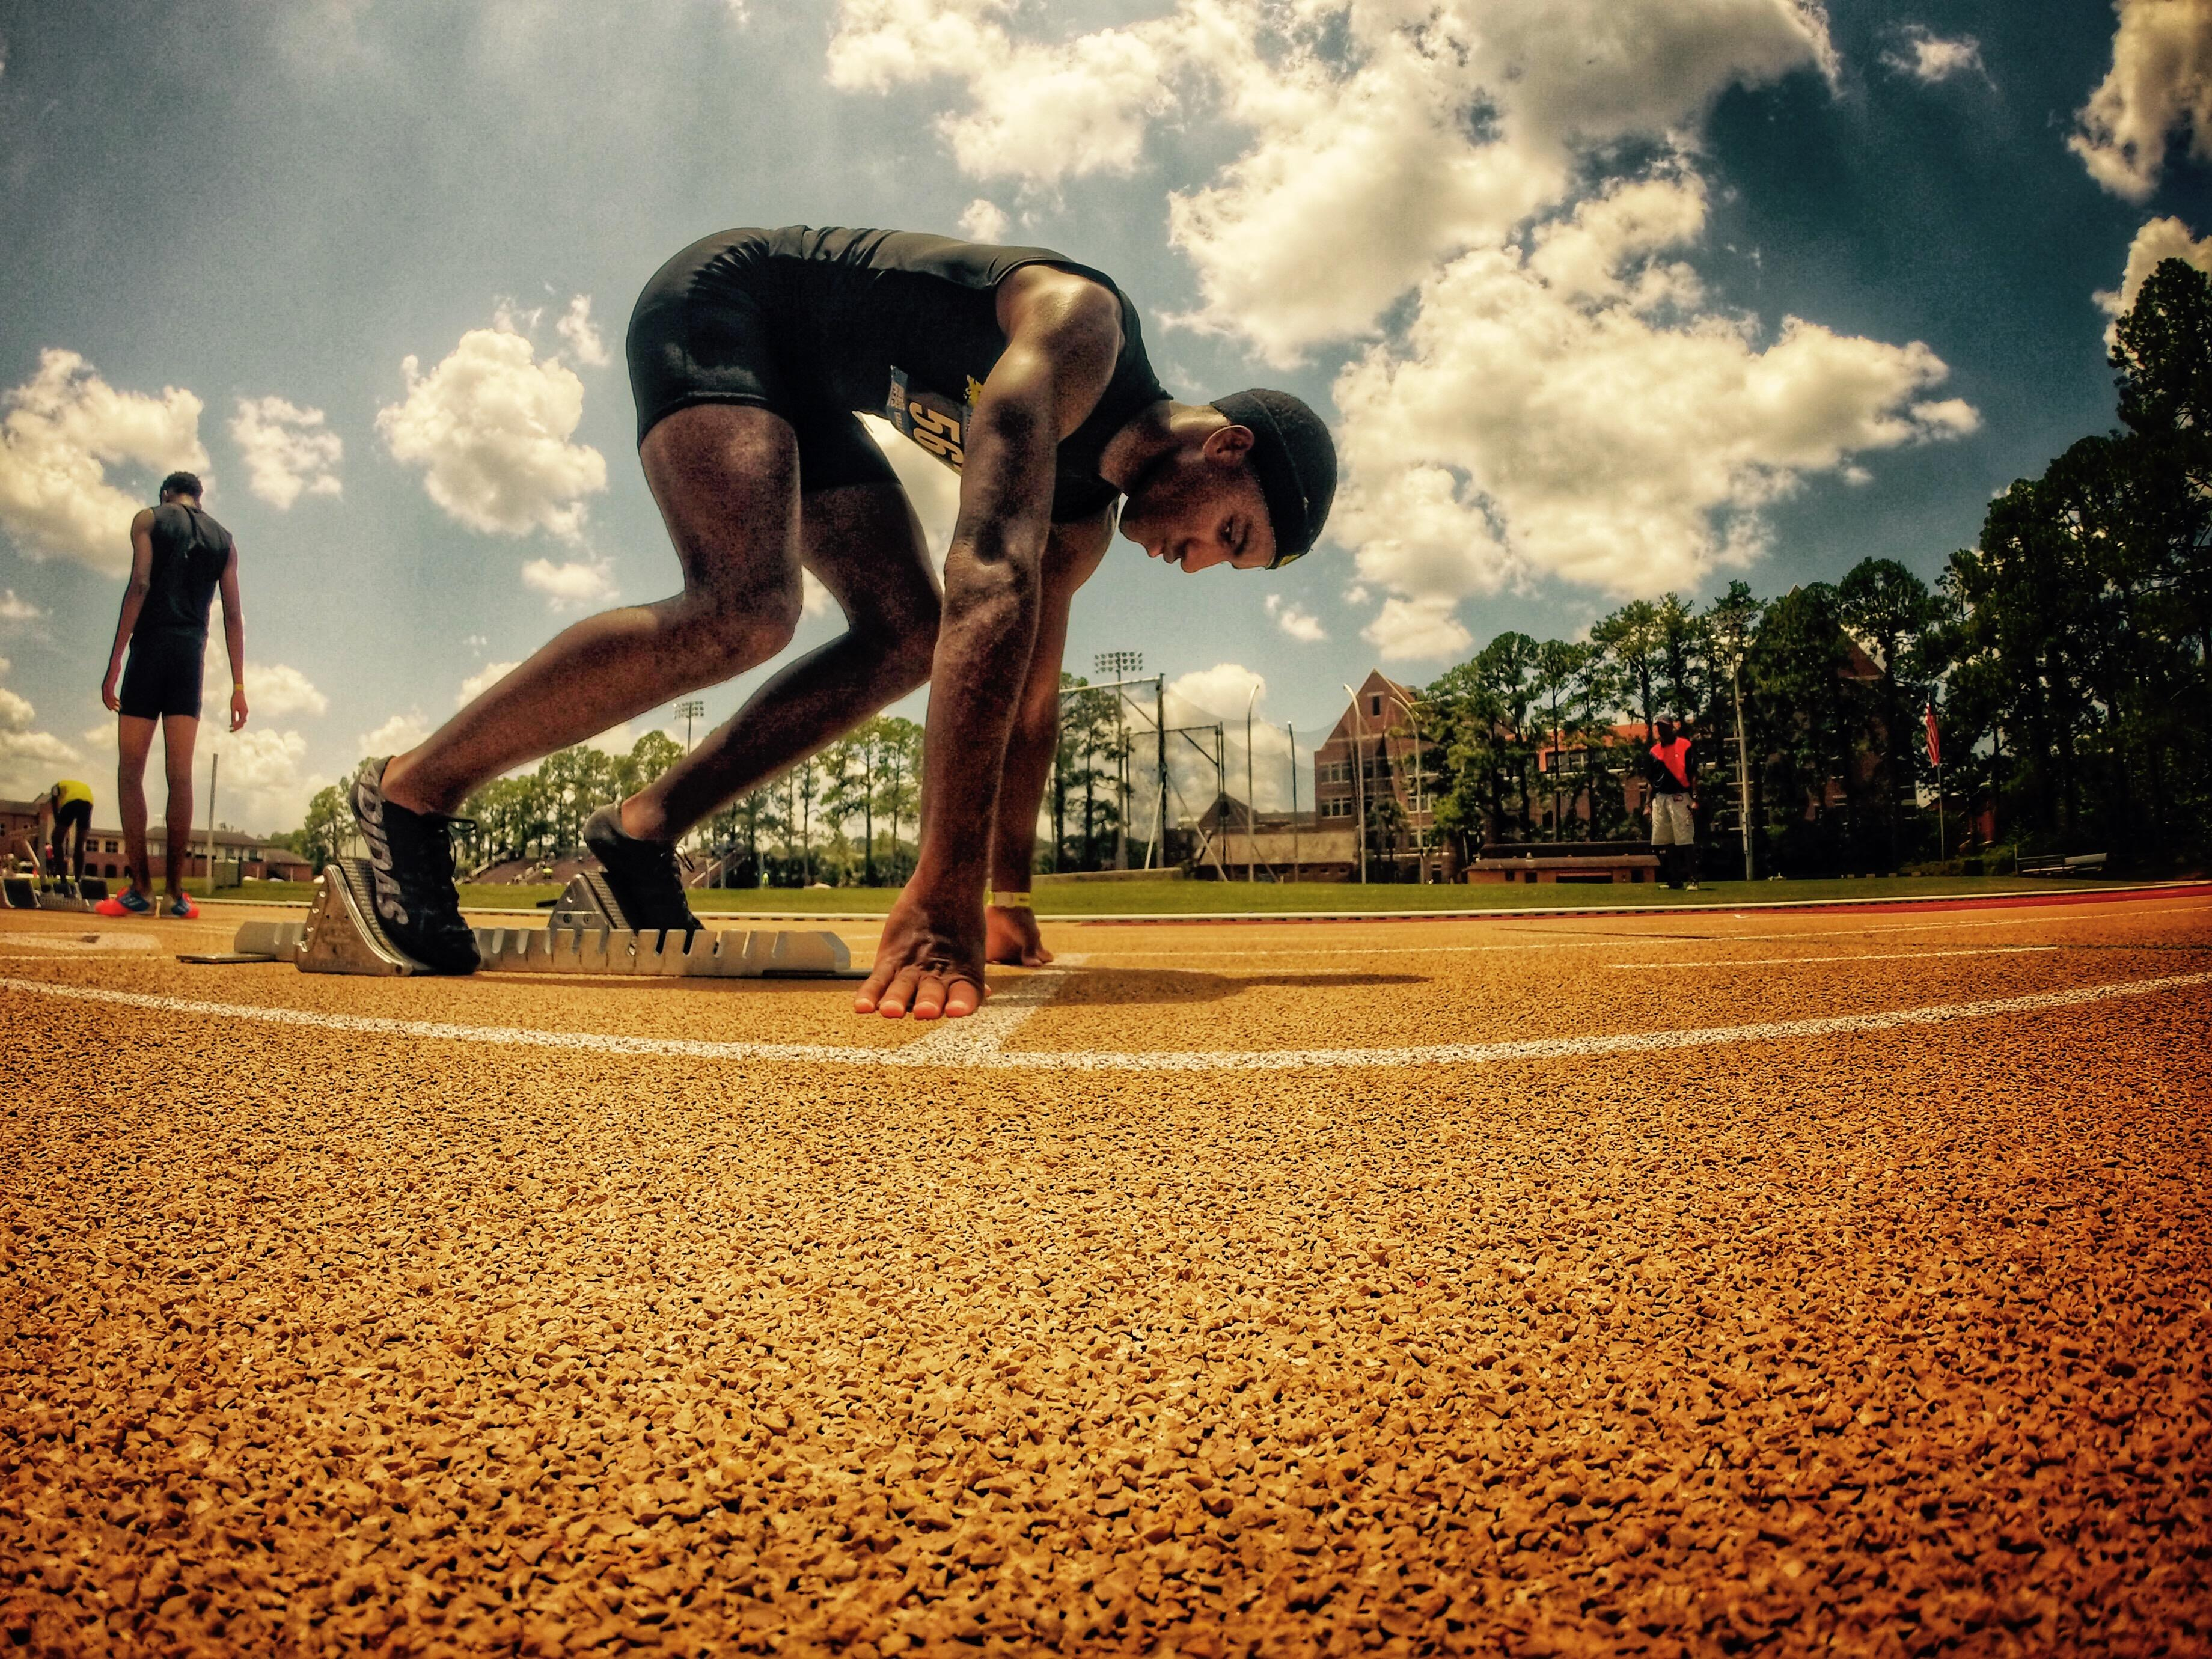 Michael Poole, a recent Lincoln grad and Florida A&M signee, prepares to burst out of the blocks during the Ernie Sims Track & Field Invitational. Poole is the son of North Florida Speed coach Corey Poole.